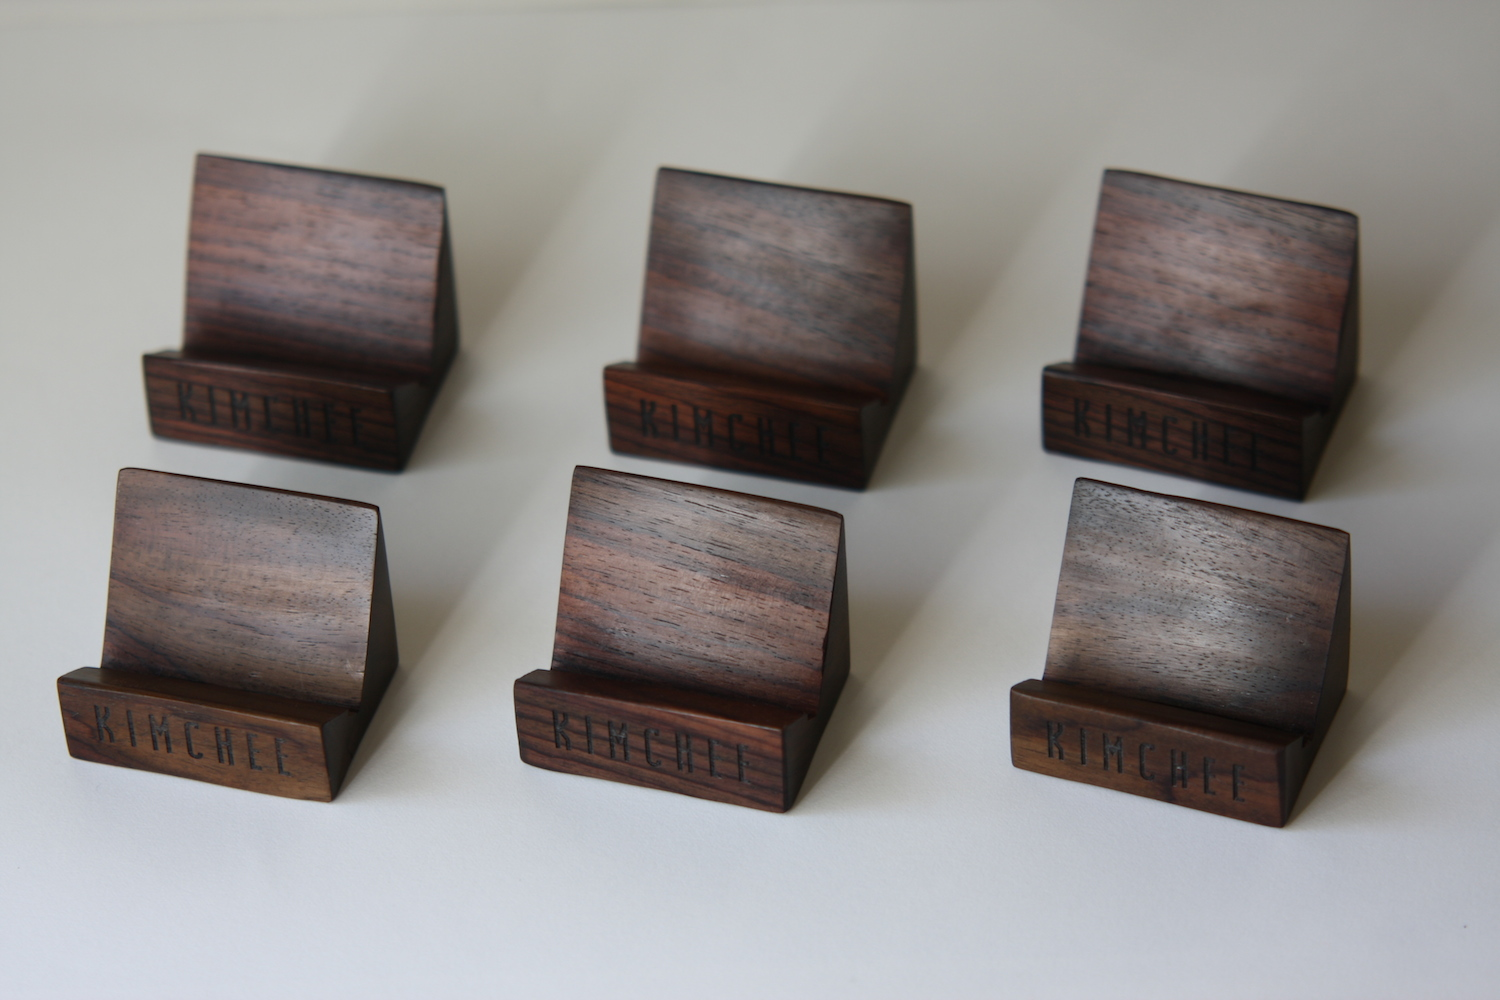 Custom laser engraved business card holders for a Sushi restaurant in London.